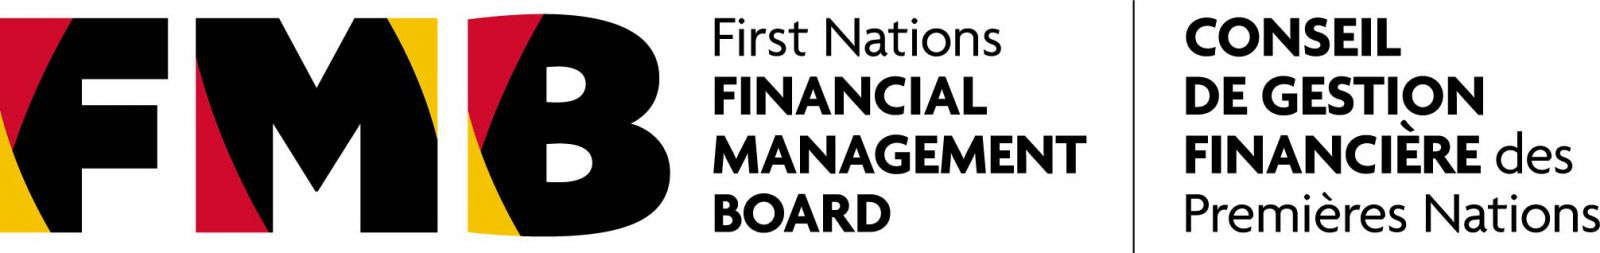 First Nations Financial Management Board